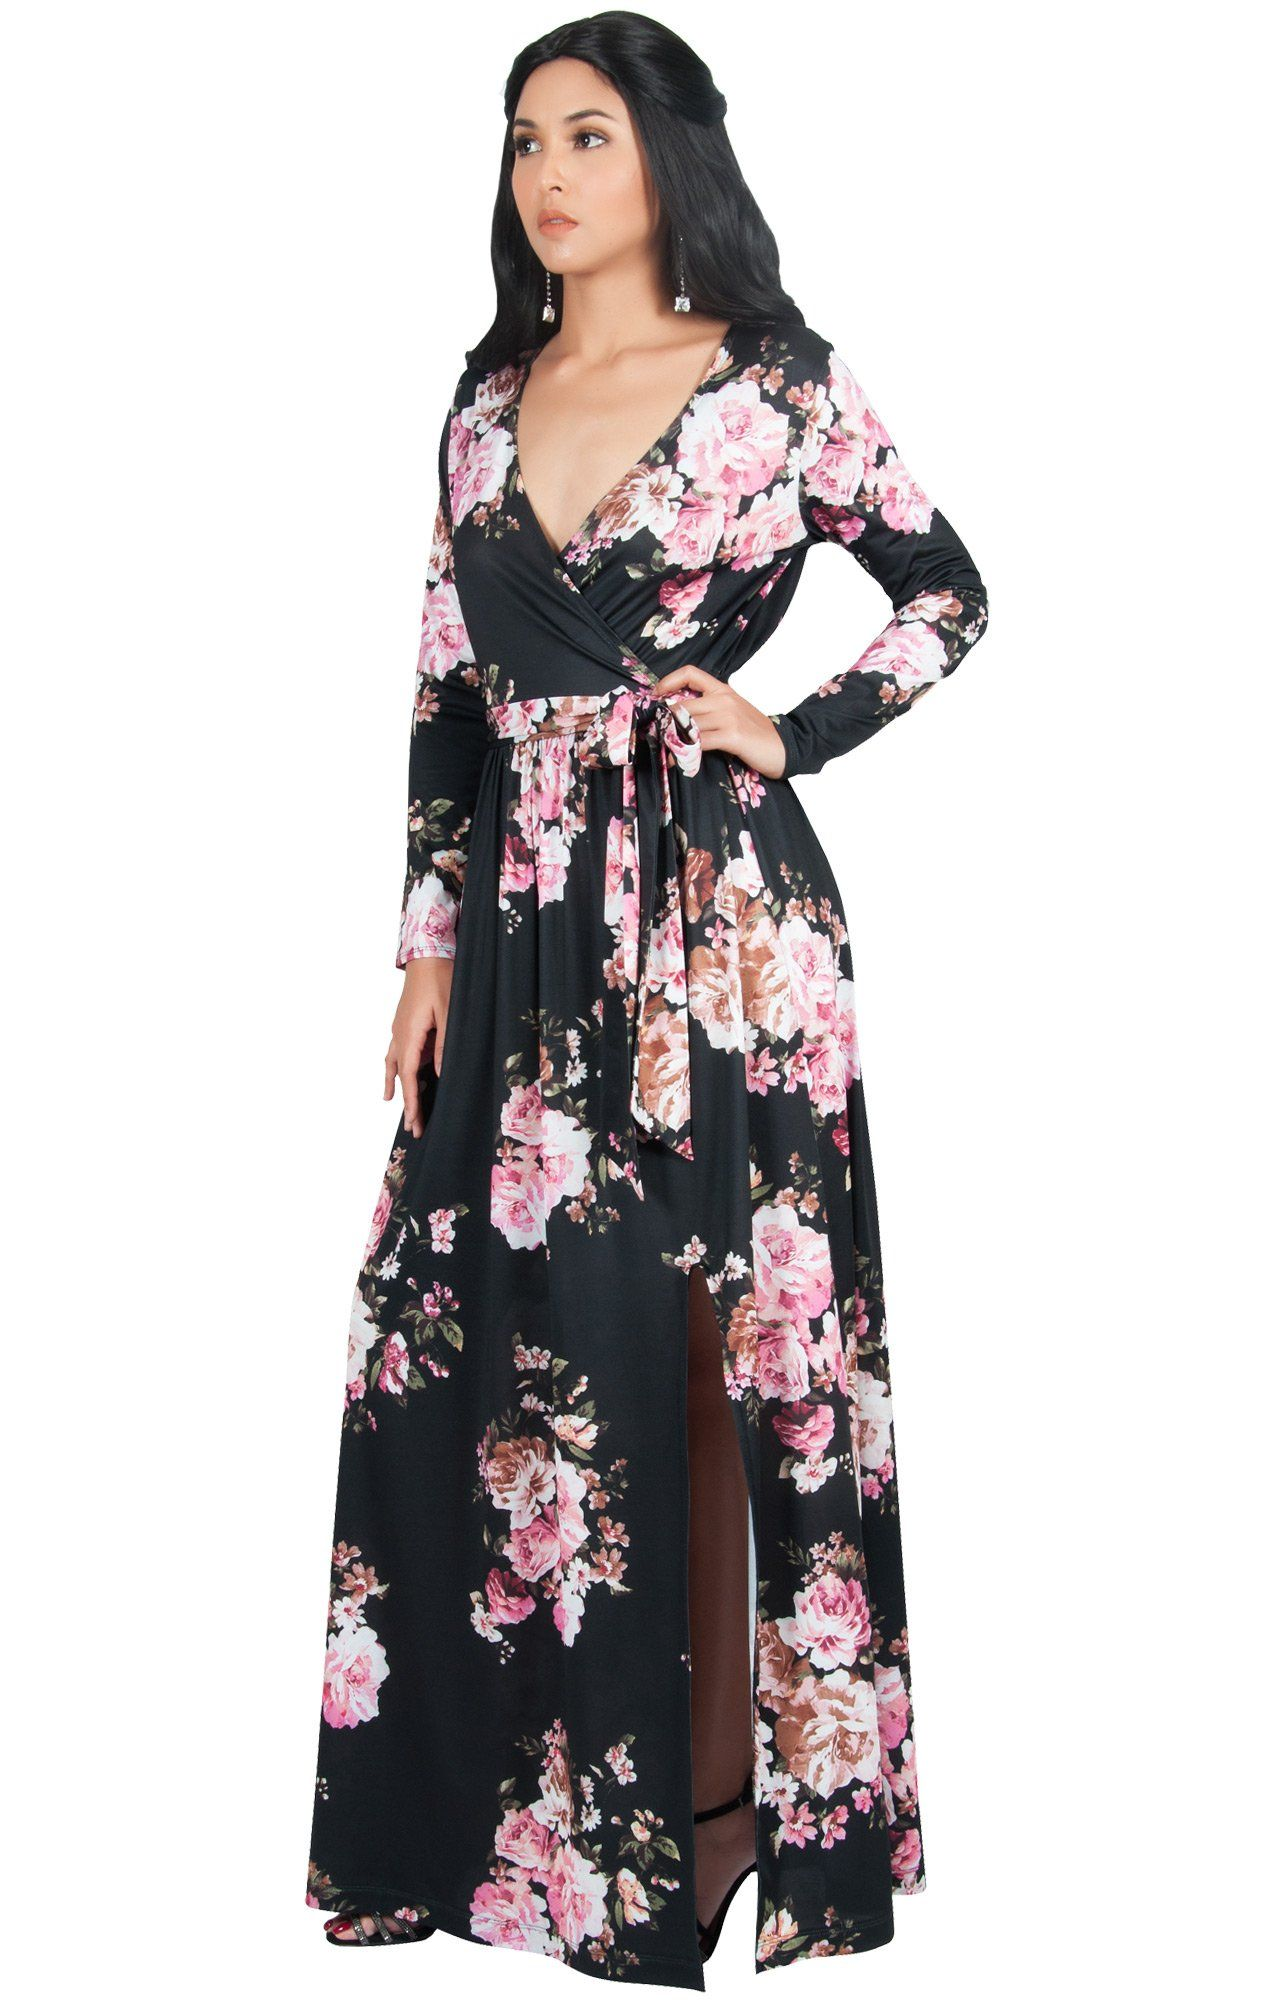 421d95199923a Maternity Dresses - KOH KOH Plus Size Womens Long Sleeve Floral Flower  Print VNeck Slit Split Cute Cocktail Evening Winter Fall Wedding Guest Sexy  Party ...